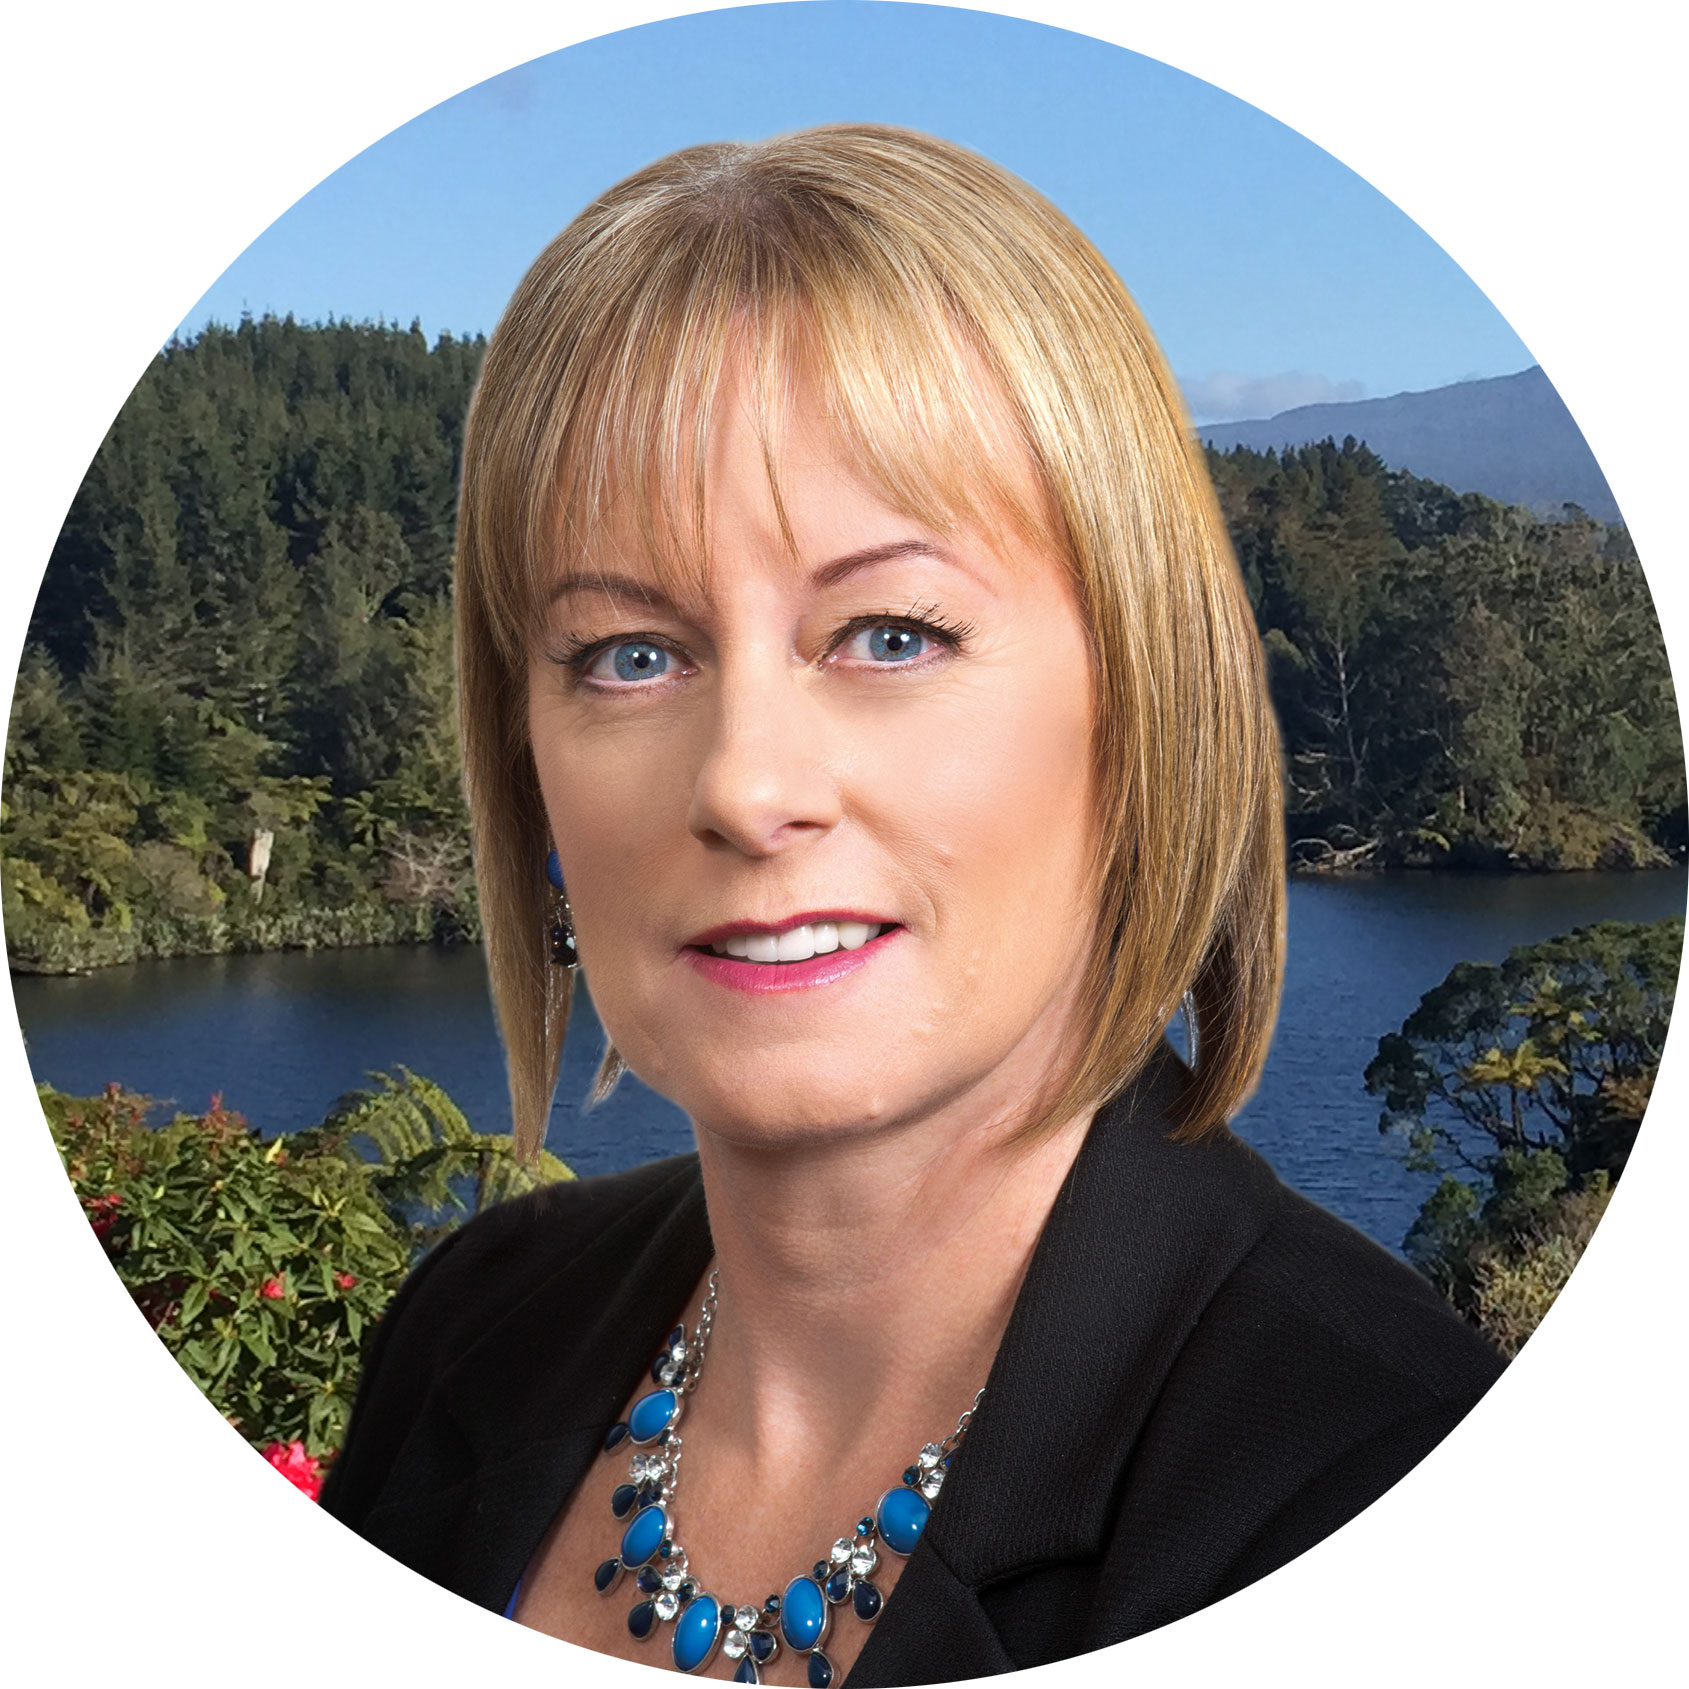 Barbara is the current MP for Taranaki - King Country, representing one of the biggest rural electorates in Parliament.